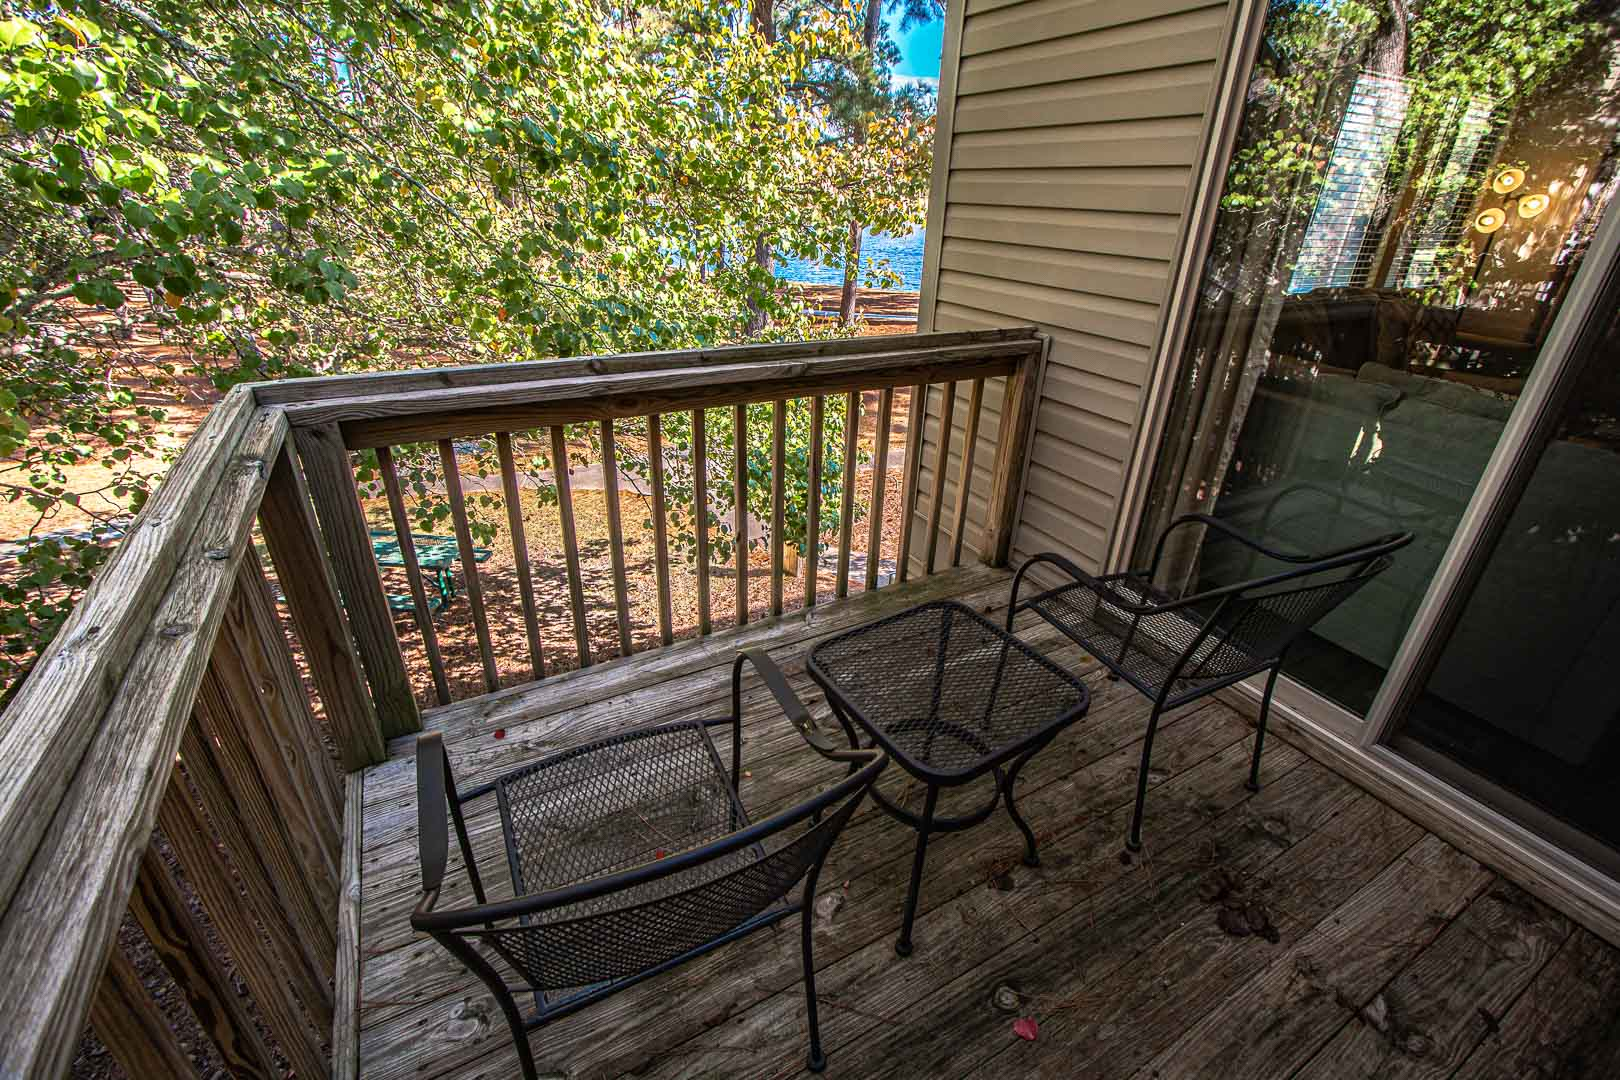 A relaxing view from the balcony at VRI's Sandcastle Cove in New Bern, North Carolina.